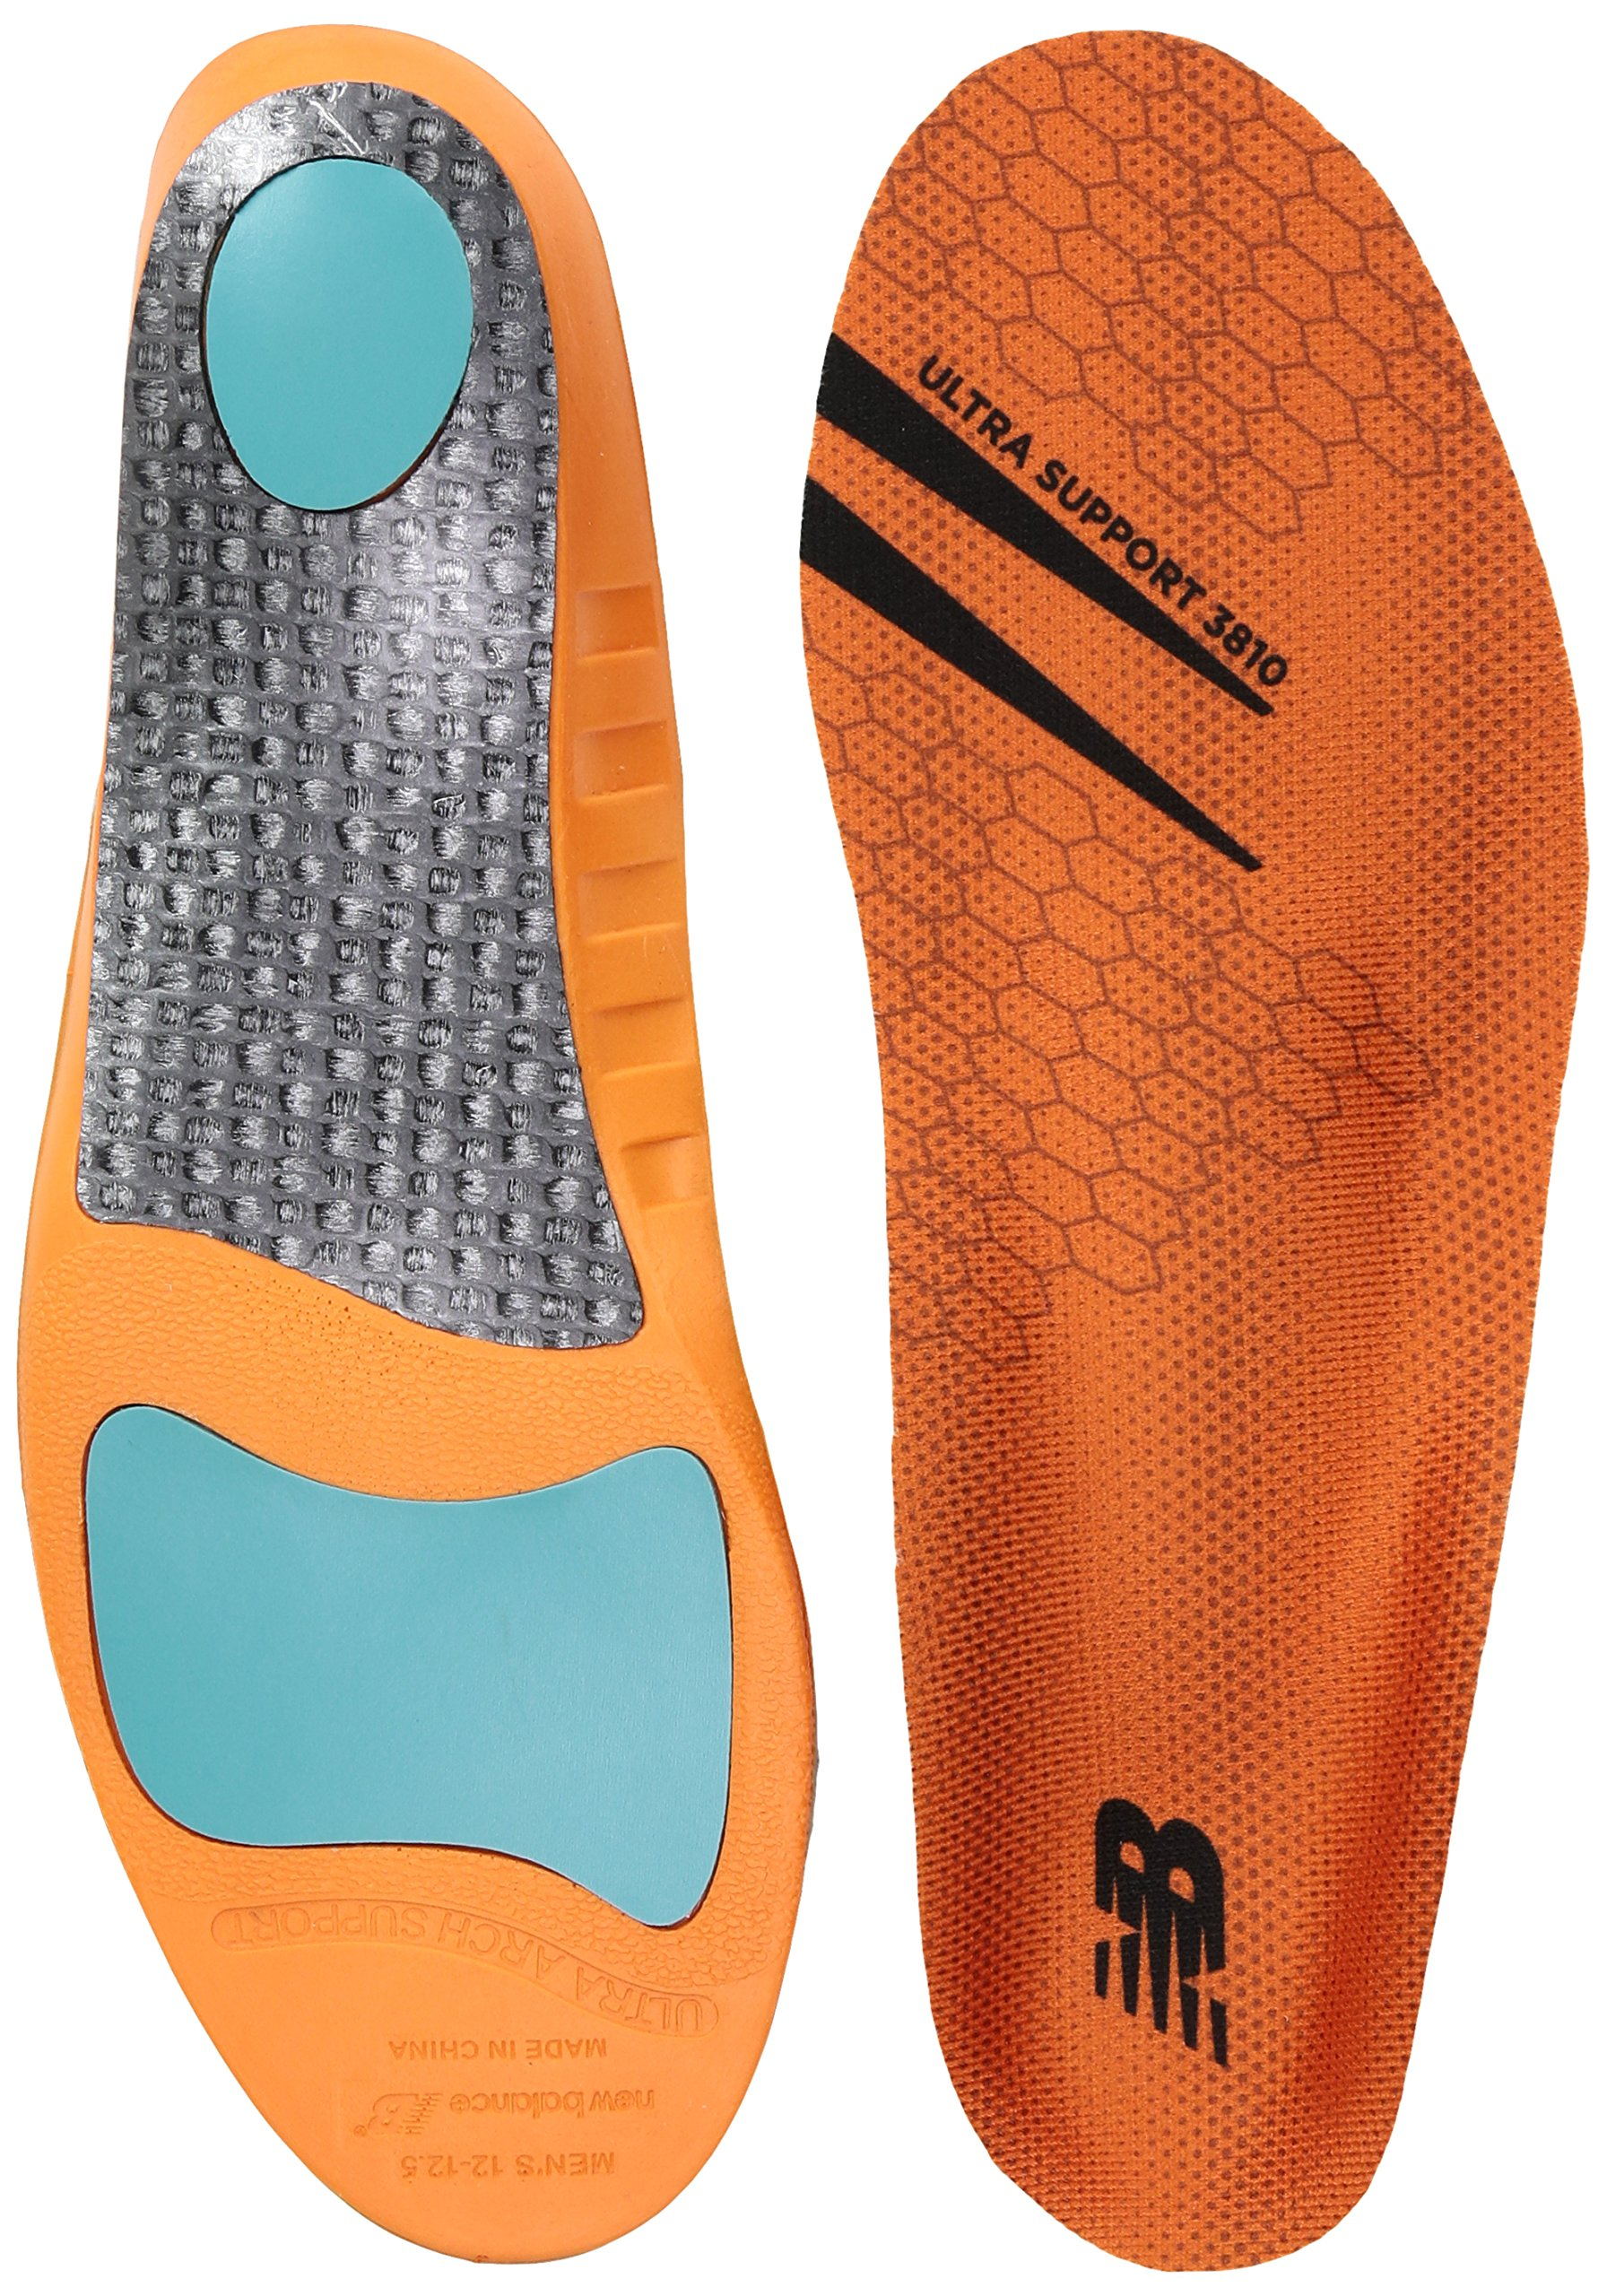 New Balance Insoles 3810 Ultra Support Shoe Insoles, Orange, Medium/M 11-11.5, W 12.5 D US